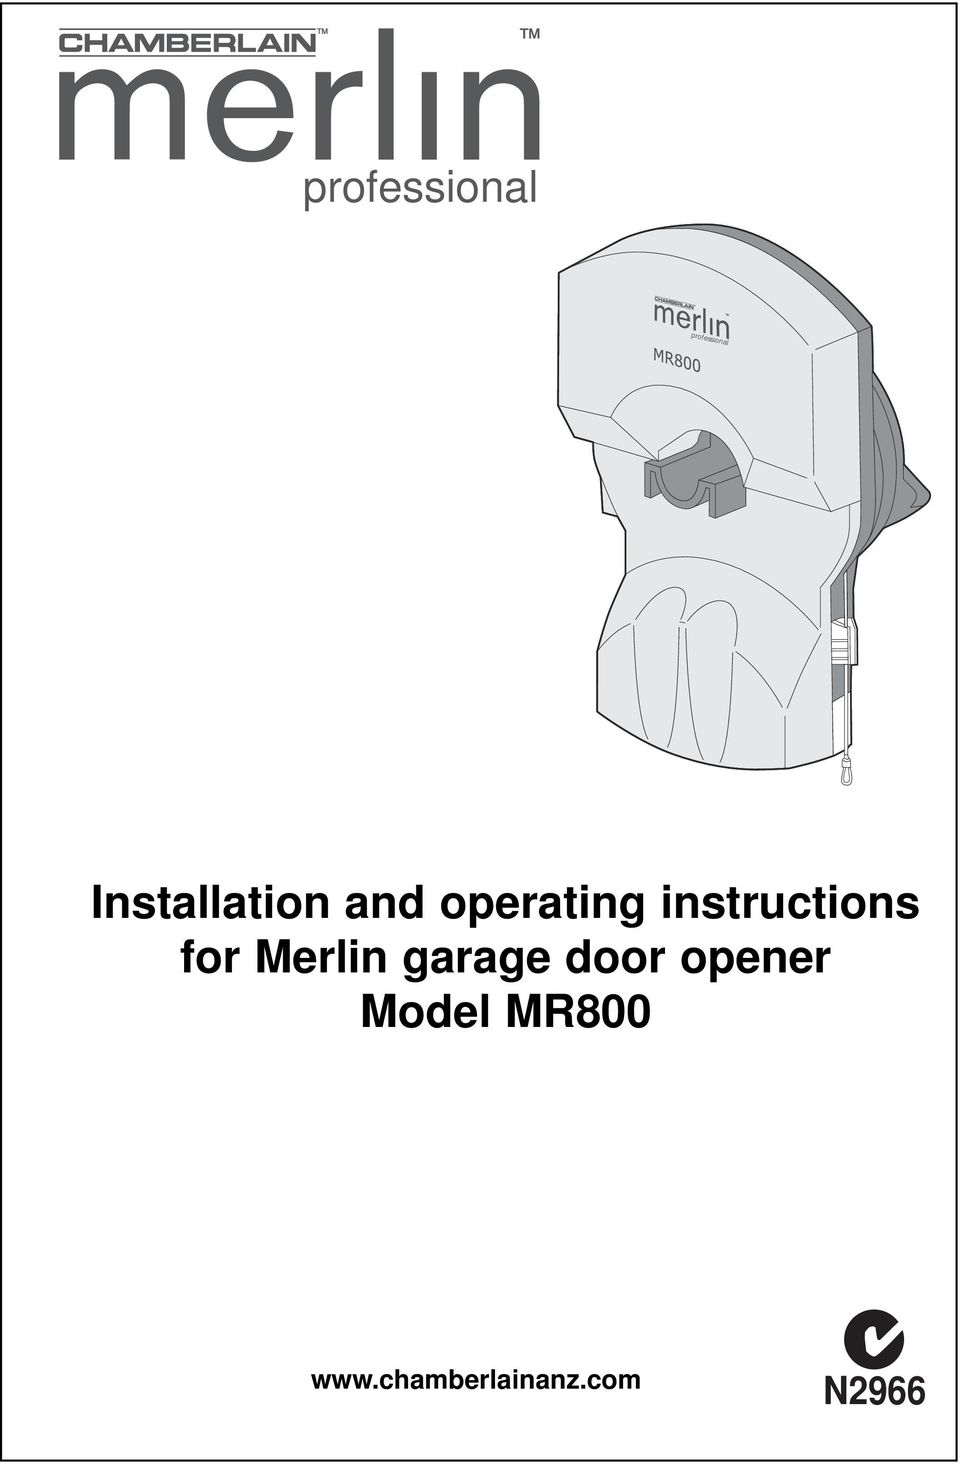 instructions for Merlin garage